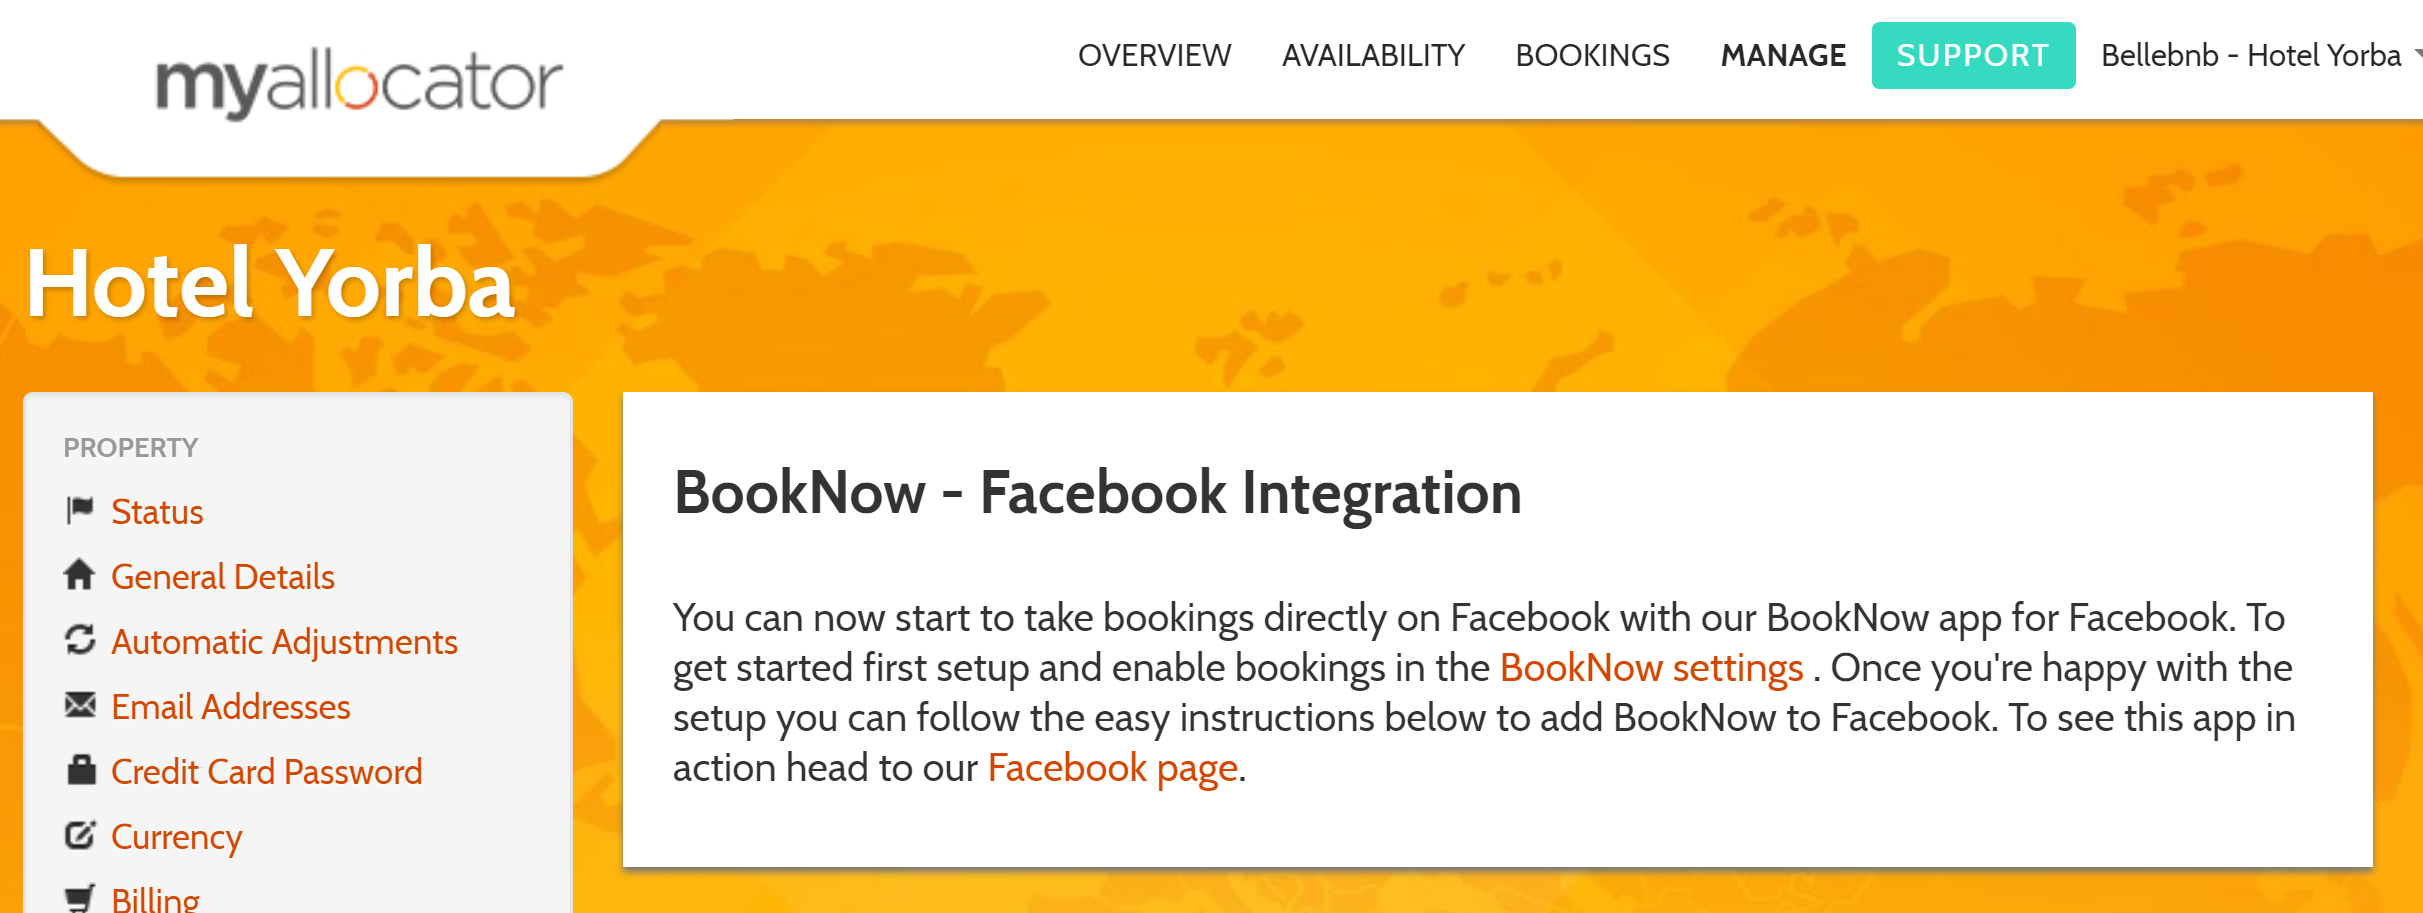 Hotel Facebook Page Integration. You can accept reservations directly from your hotel's Facebook page using one of the embedding widgets available through our channel manager. Adding a booking widget can be done in just a couple of steps, and all your reservations that come in through your Facebook page are commission free